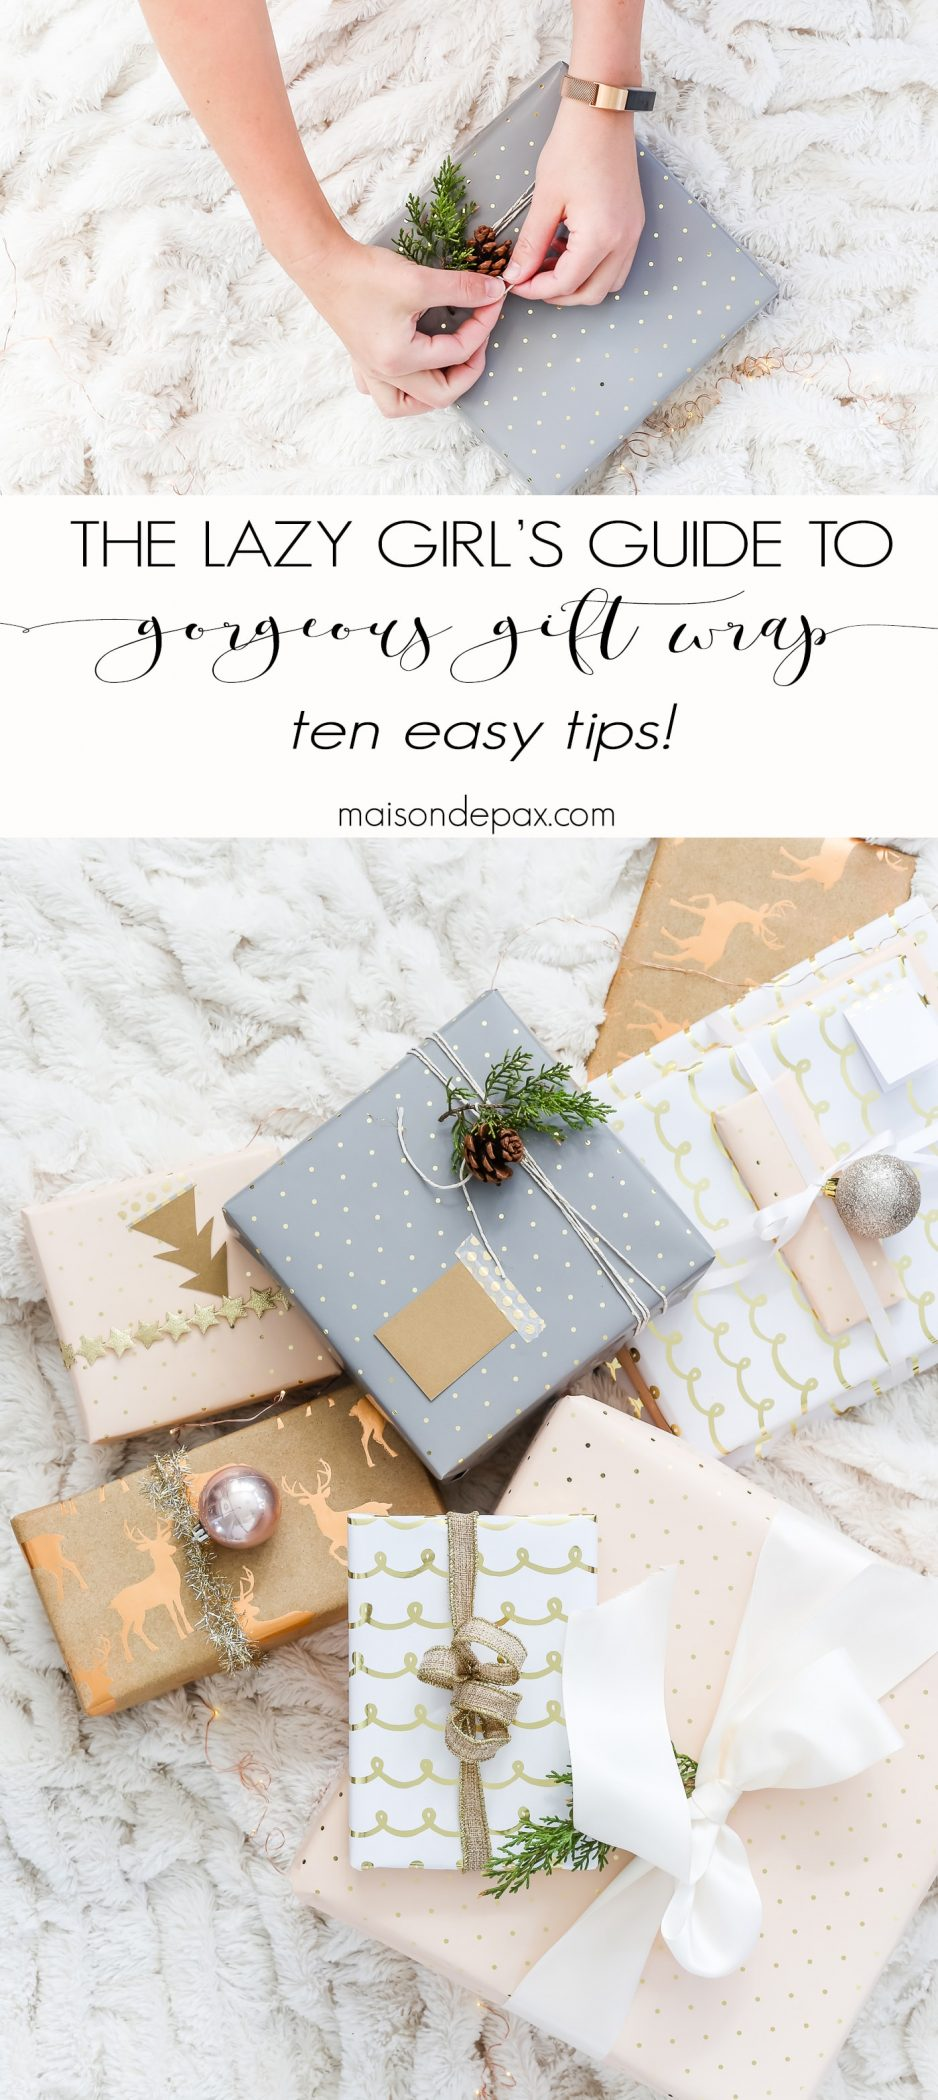 The Lazy Girl\'s Guide to Beautiful Gift Wrap Ideas - Maison de Pax